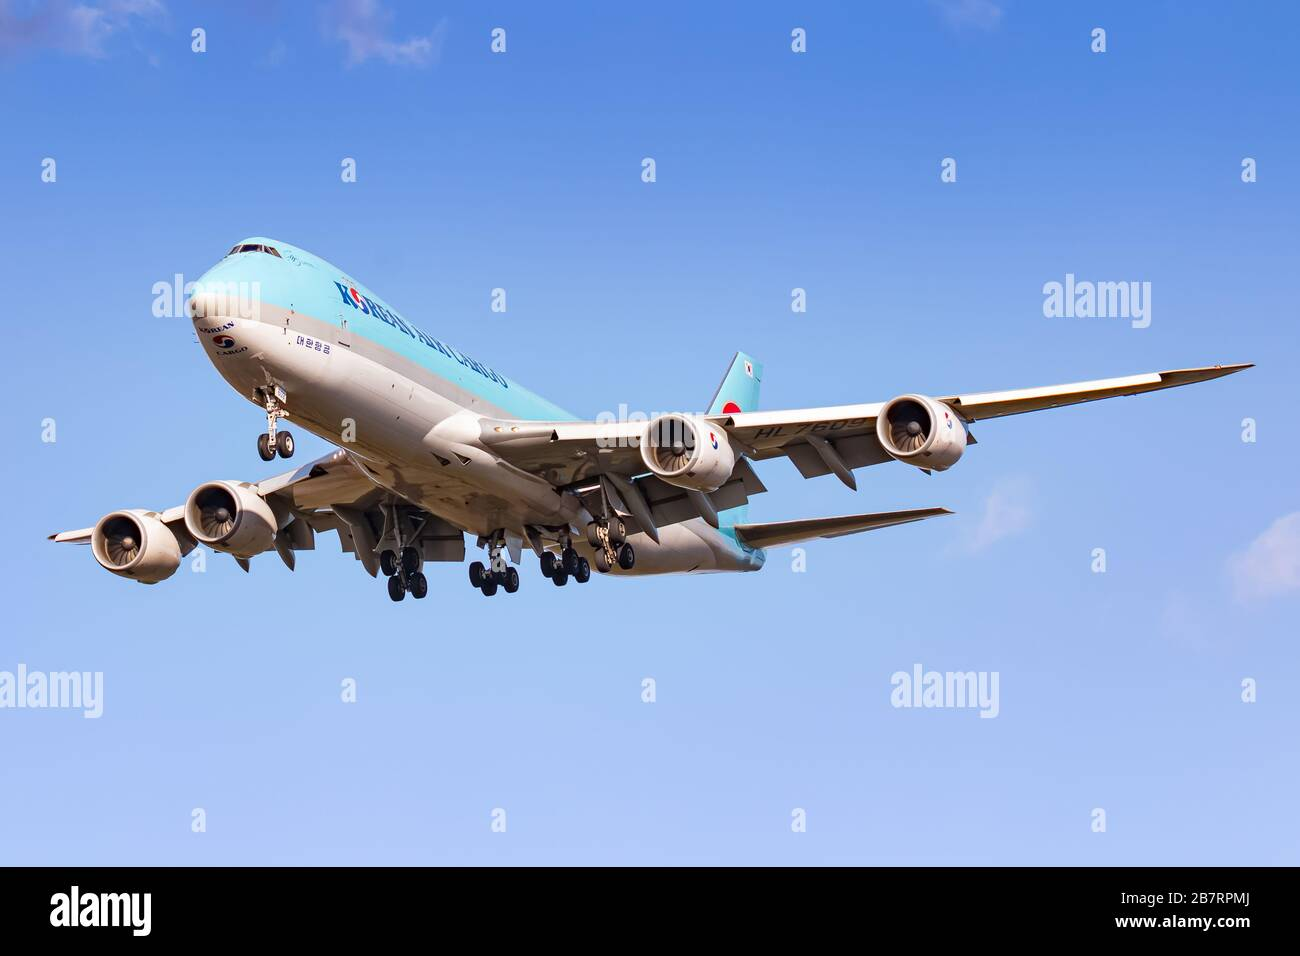 Frankfurt Germany February 25 2020 Korean Air Cargo Boeing 747 Airplane At Frankfurt Int L Airport Fra In Germany Boeing Is An Aircraft Manufa Stock Photo Alamy